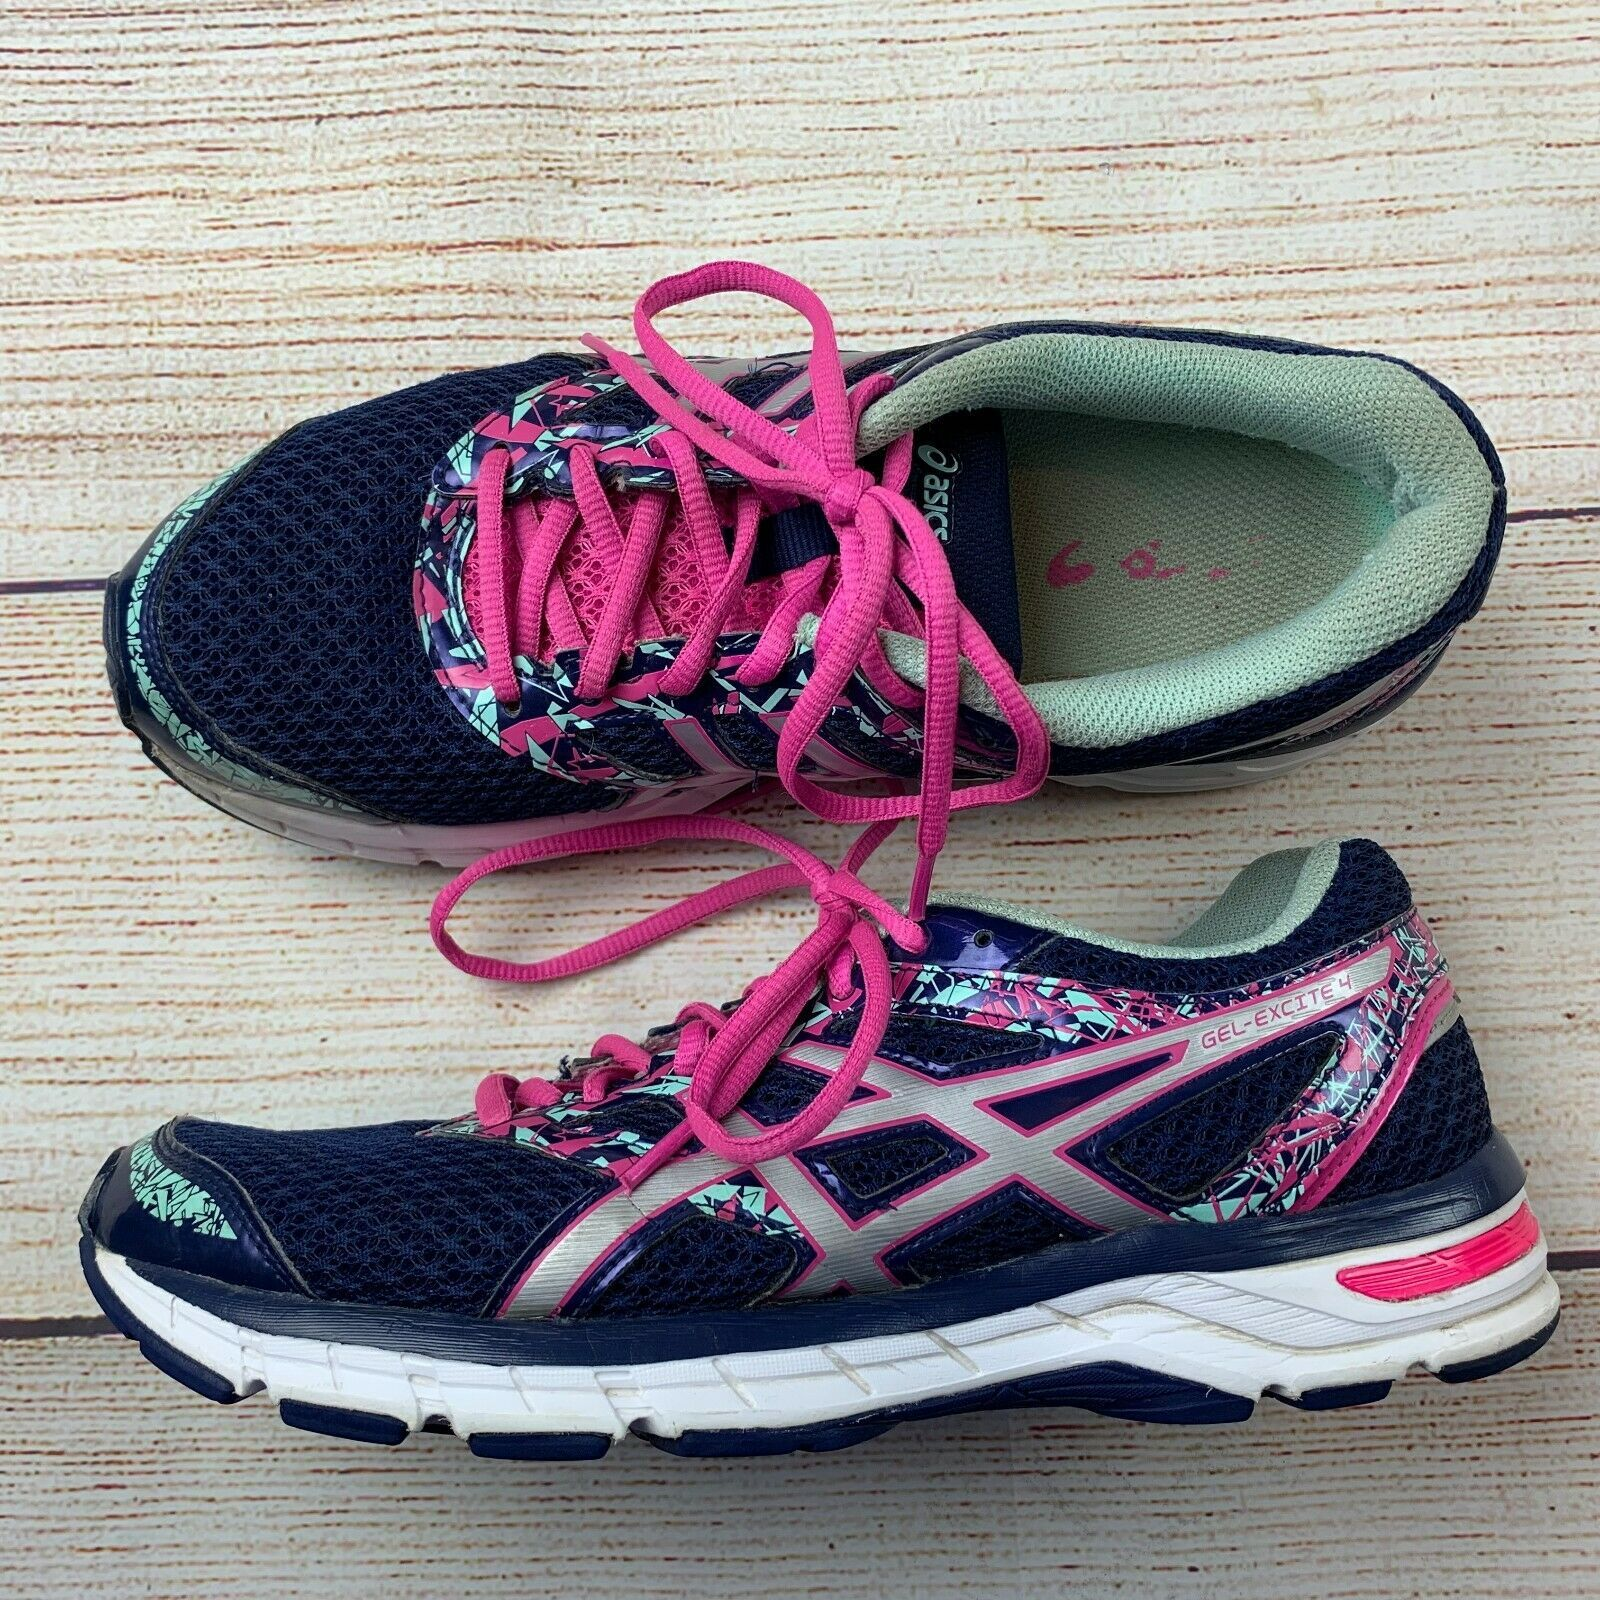 Asics womens Gel Excite 4 Navy Pink Running Shoes Sneakers 10/ 42 EUC image 2